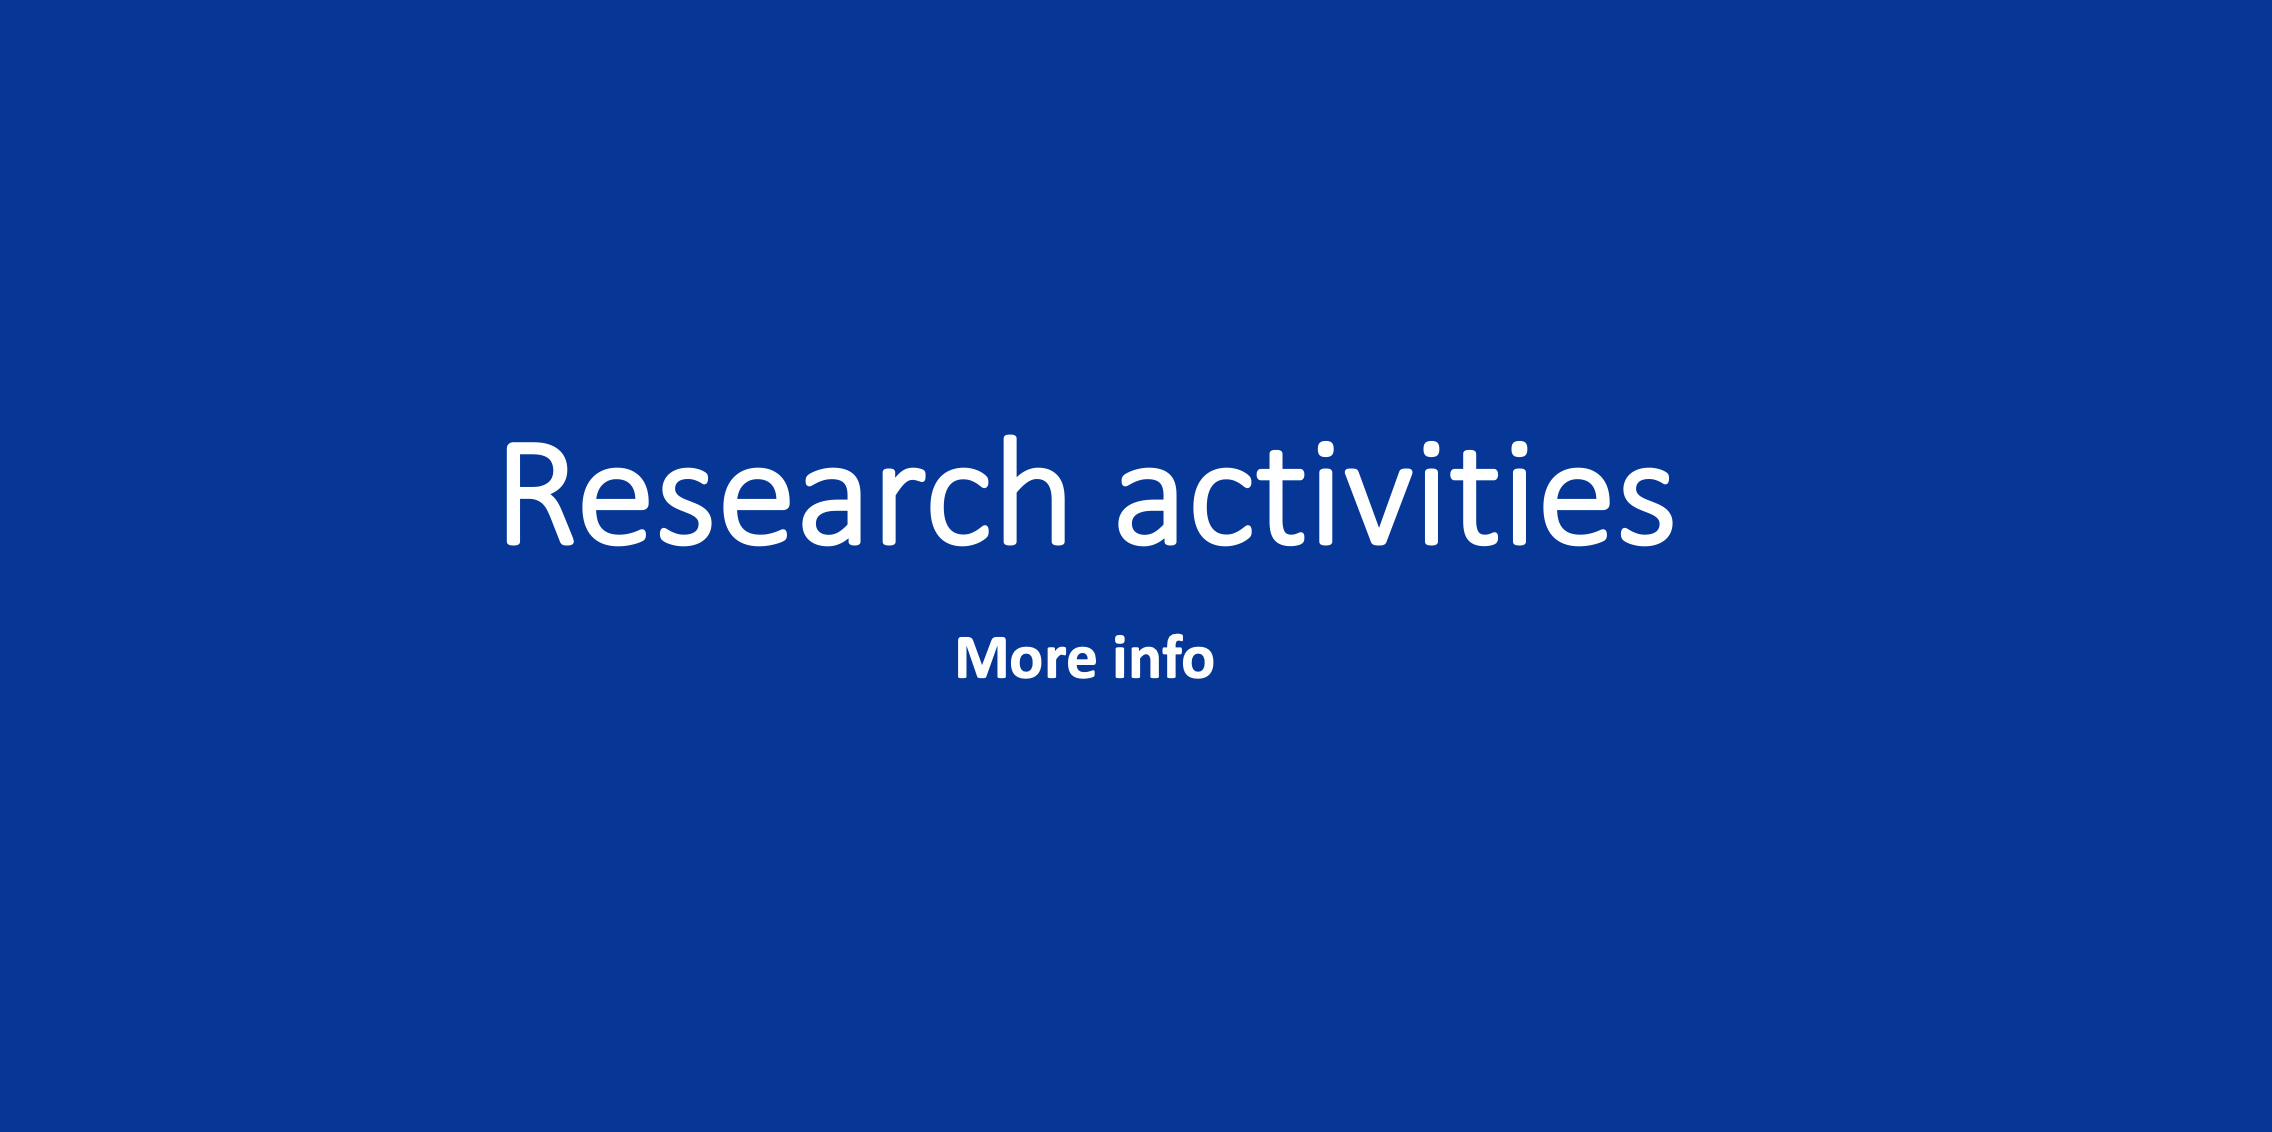 Research activities blue box